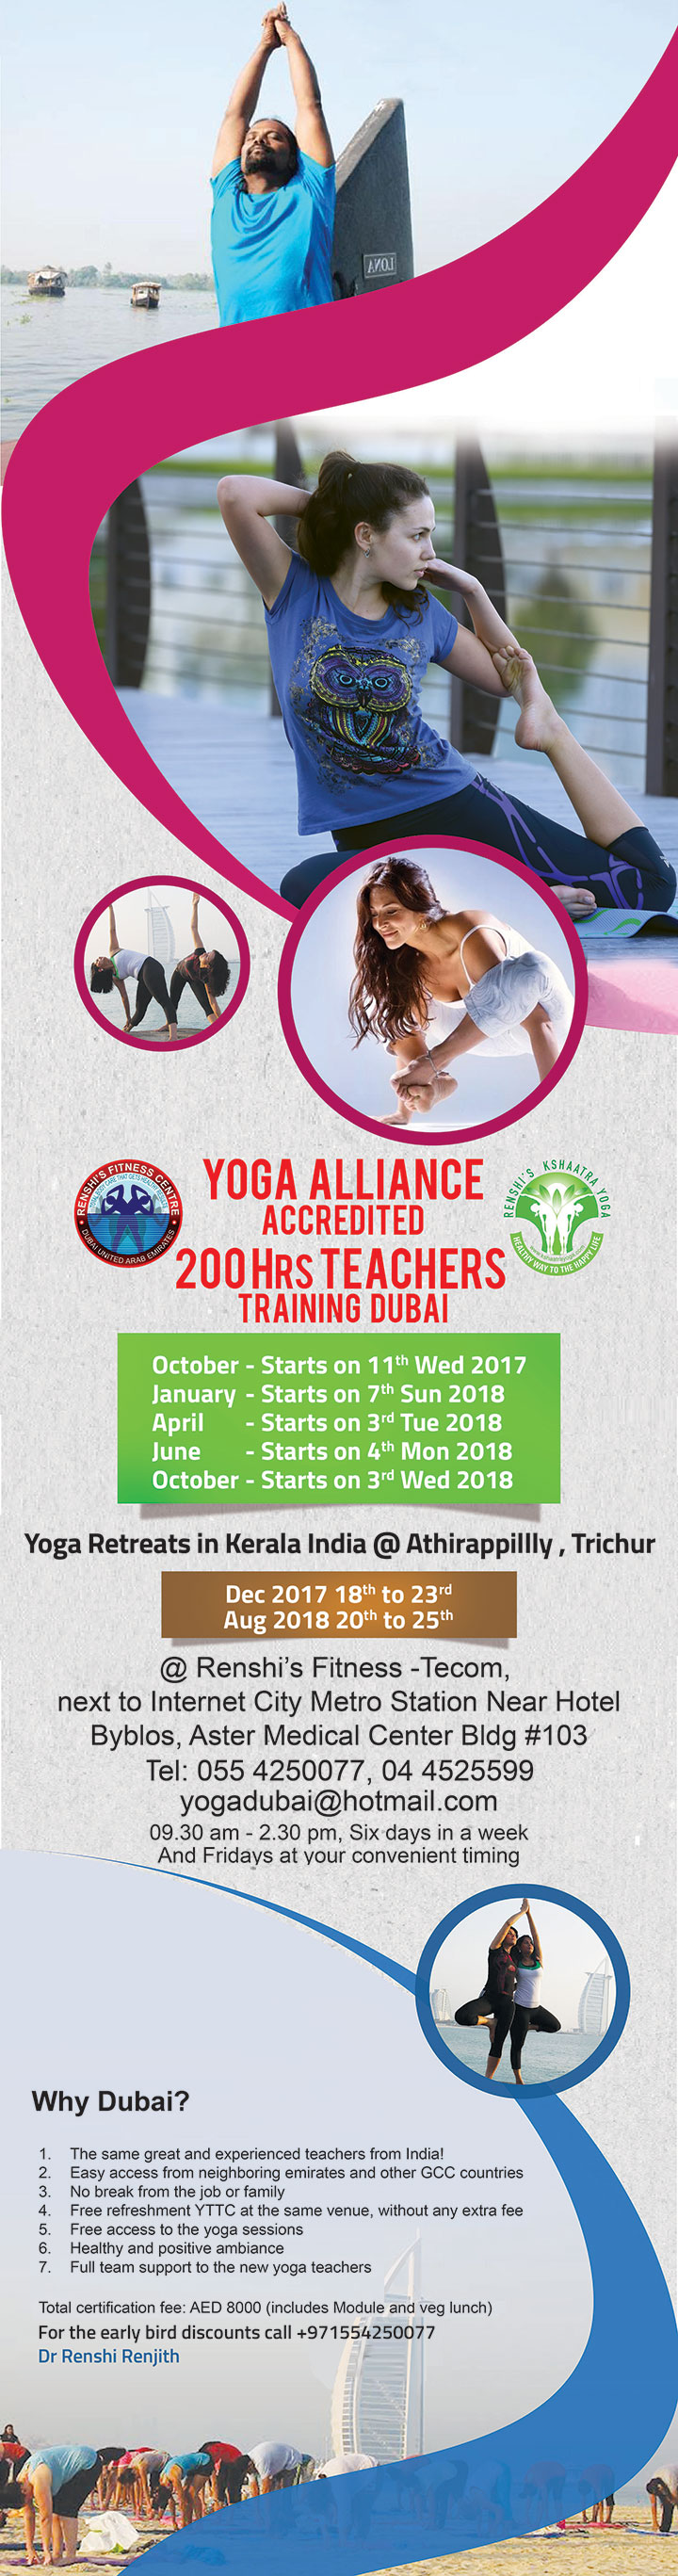 Yoga teacher training class in Dubai 2016, UAE